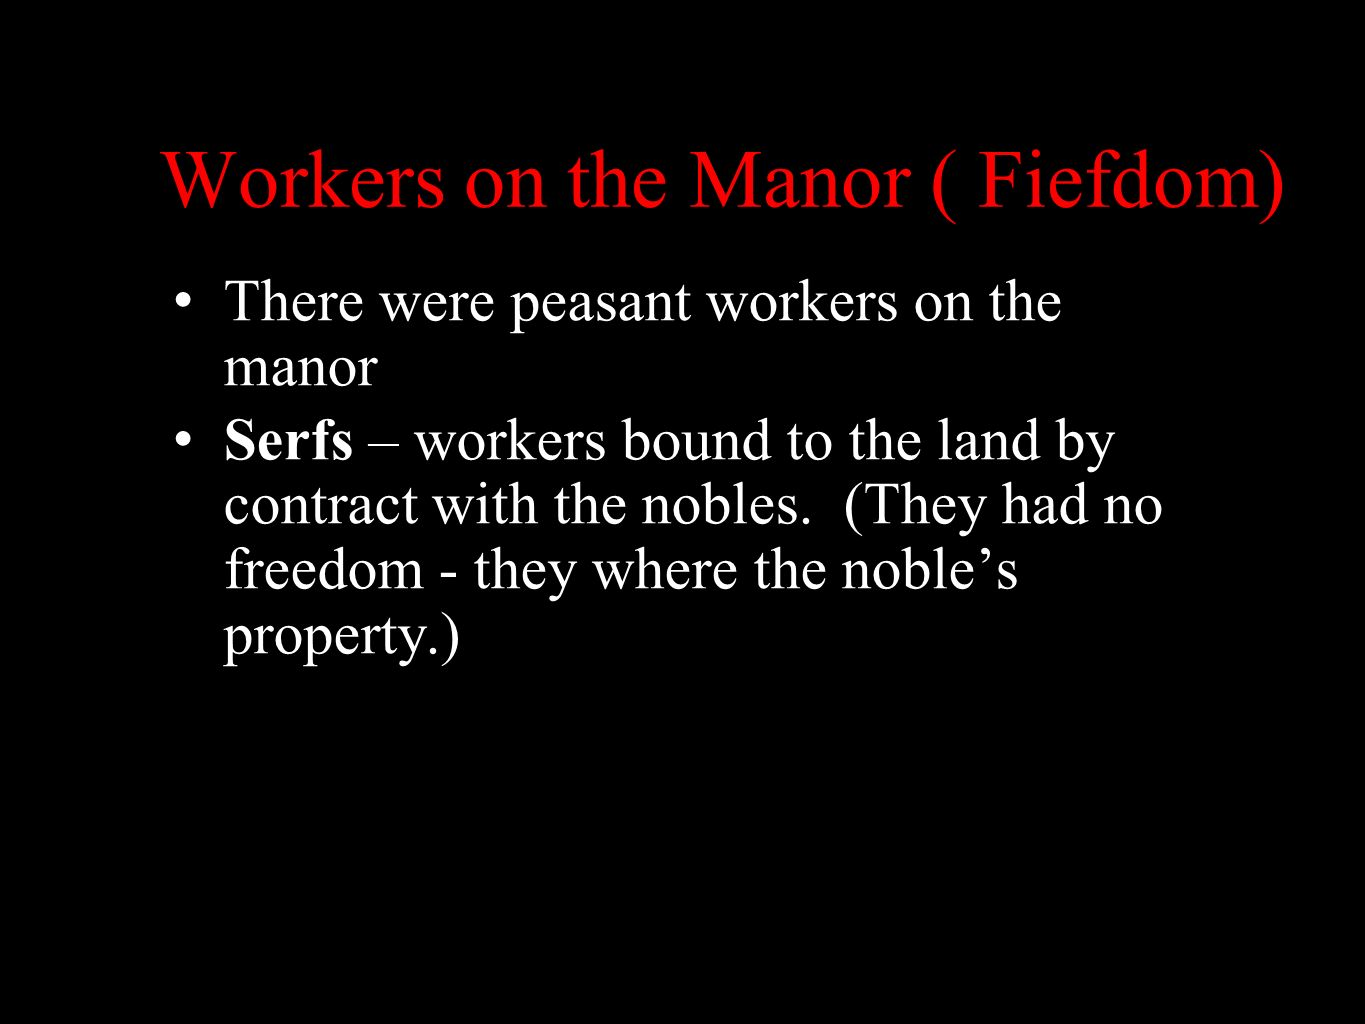 Workers on the Manor ( Fiefdom) There were peasant workers on the manor Serfs – workers bound to the land by contract with the nobles. (They had no fr